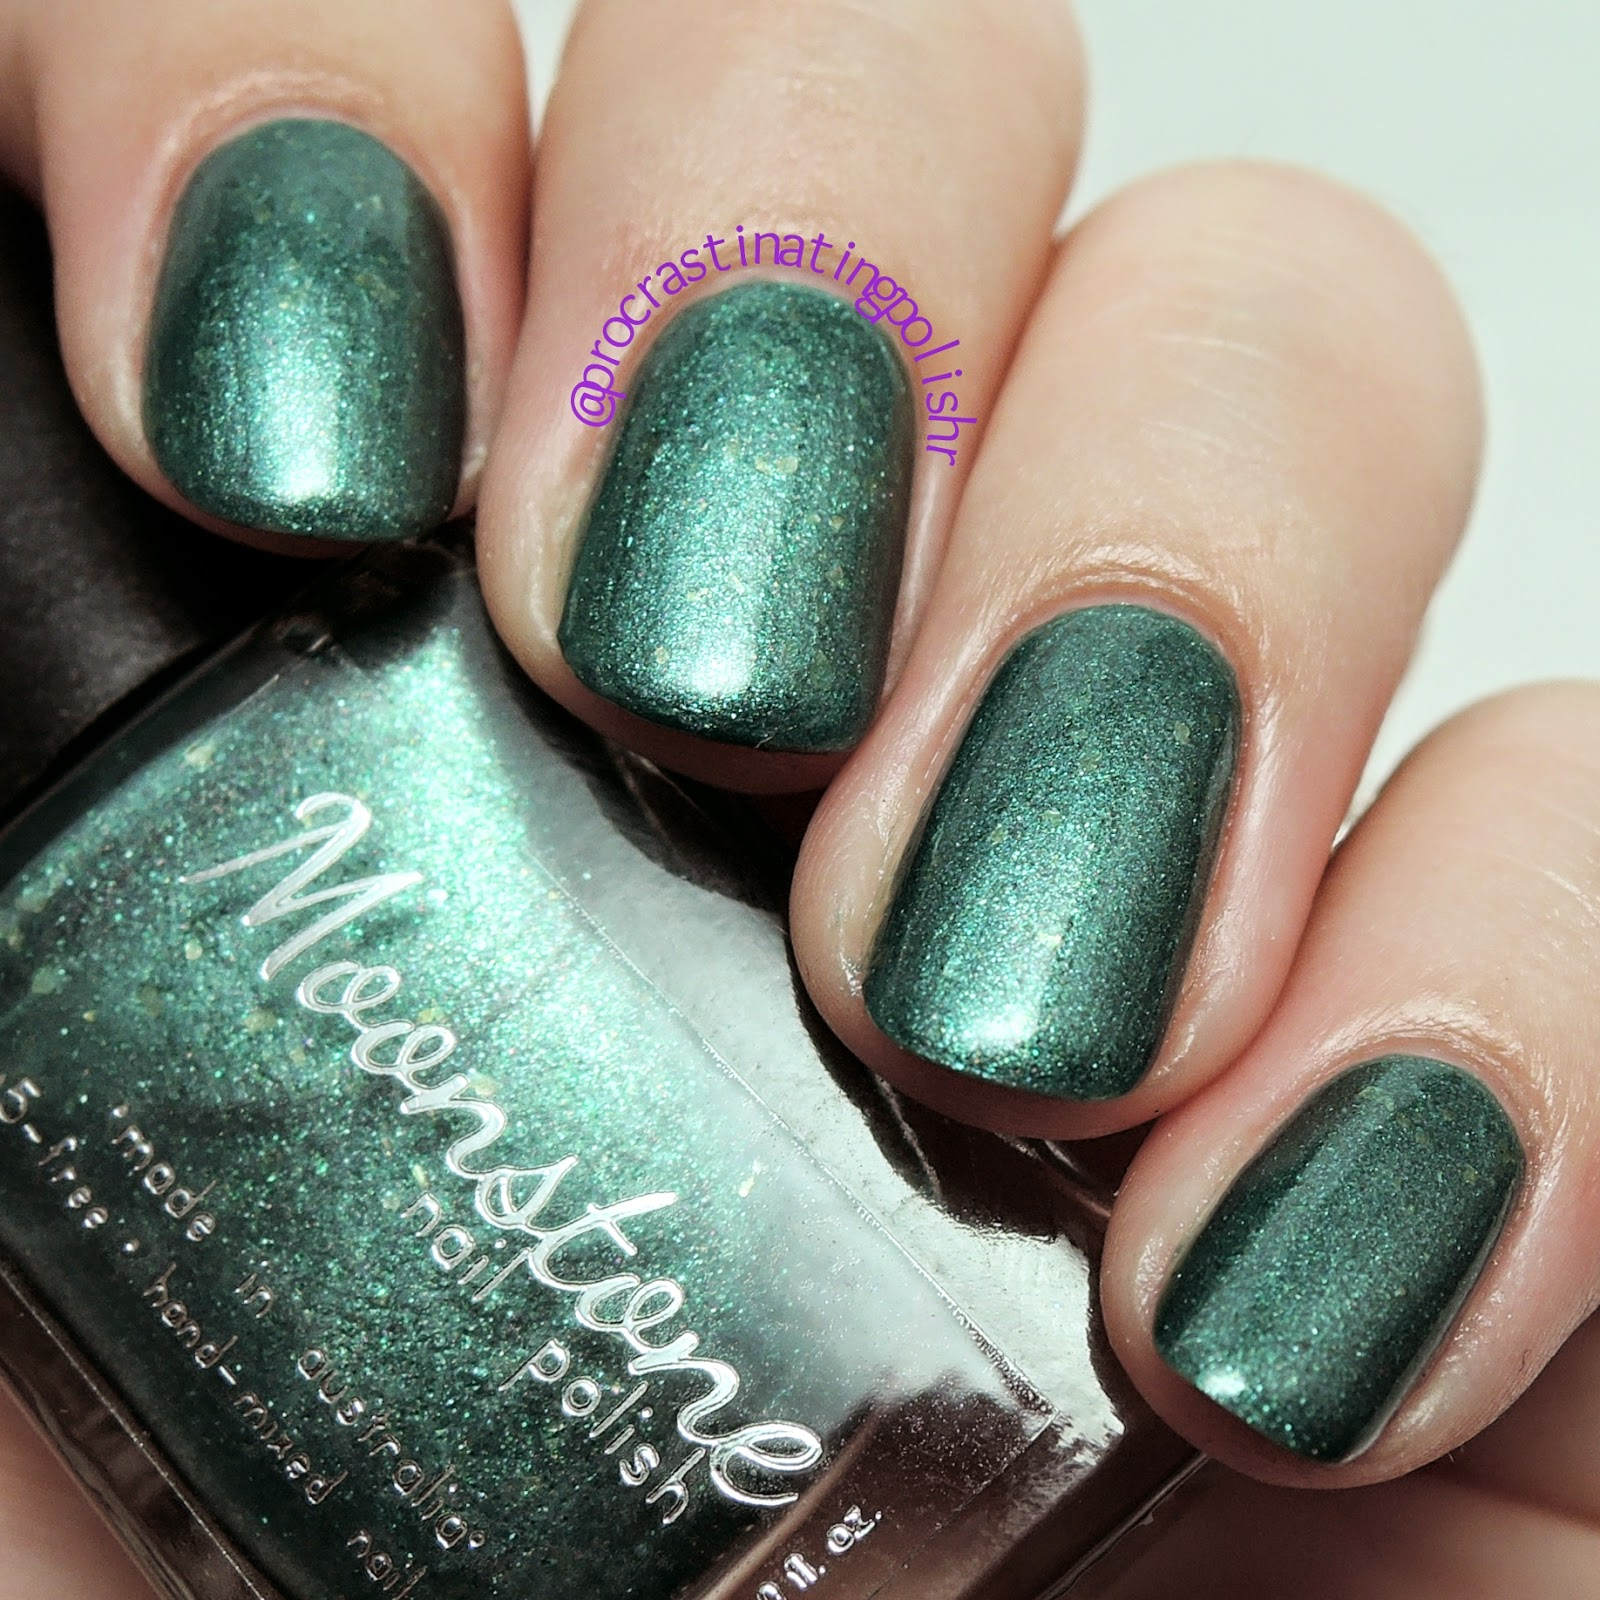 Moonstone Nail Polish - Minerva | Wicked Witches collection